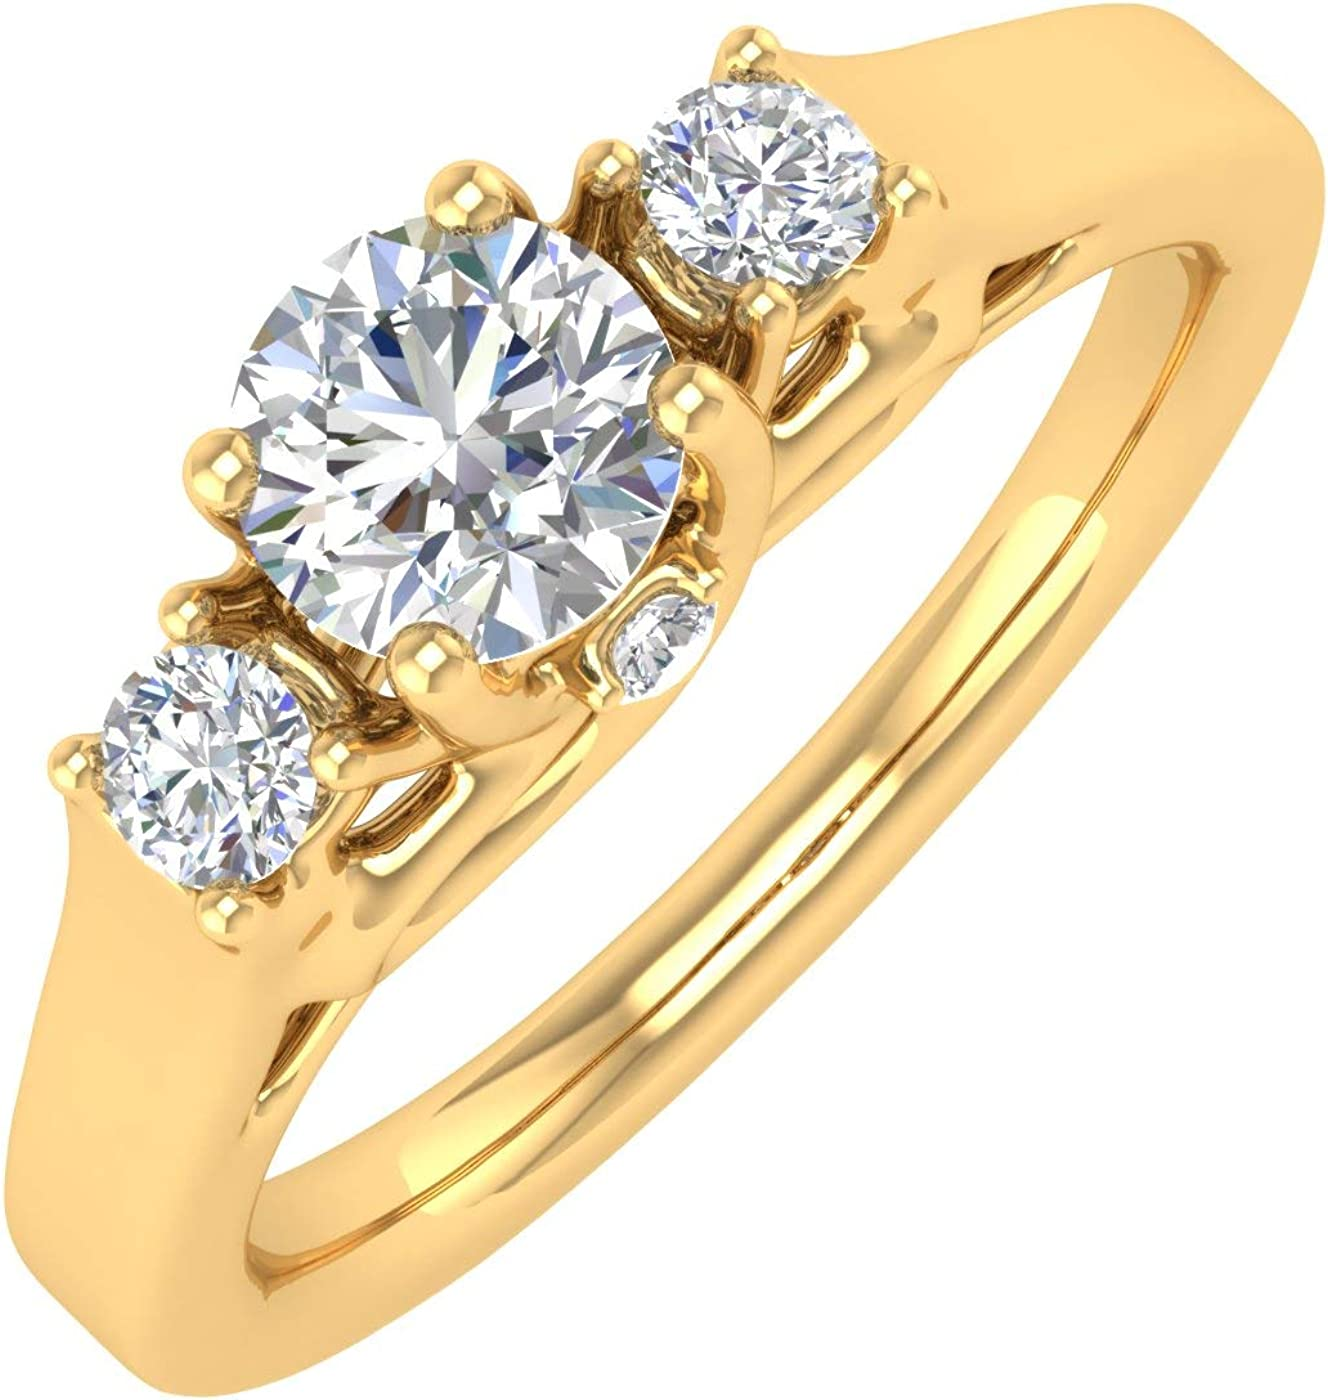 1 Max 45% OFF 2 Ranking TOP3 Carat 3-Stone Diamond Gold Ring in 10K Engagement